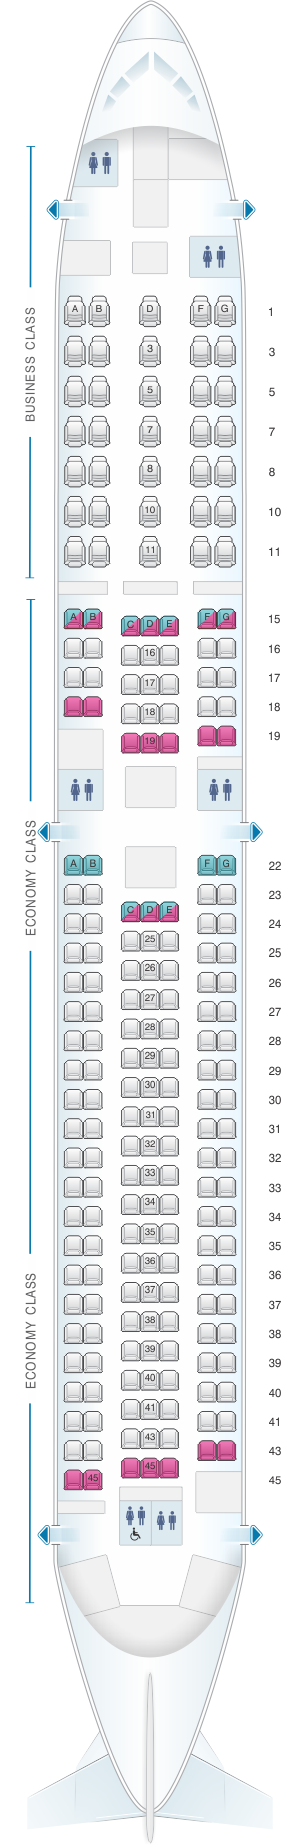 Seat map for ANA - All Nippon Airways Boeing B767 300ER 214pax